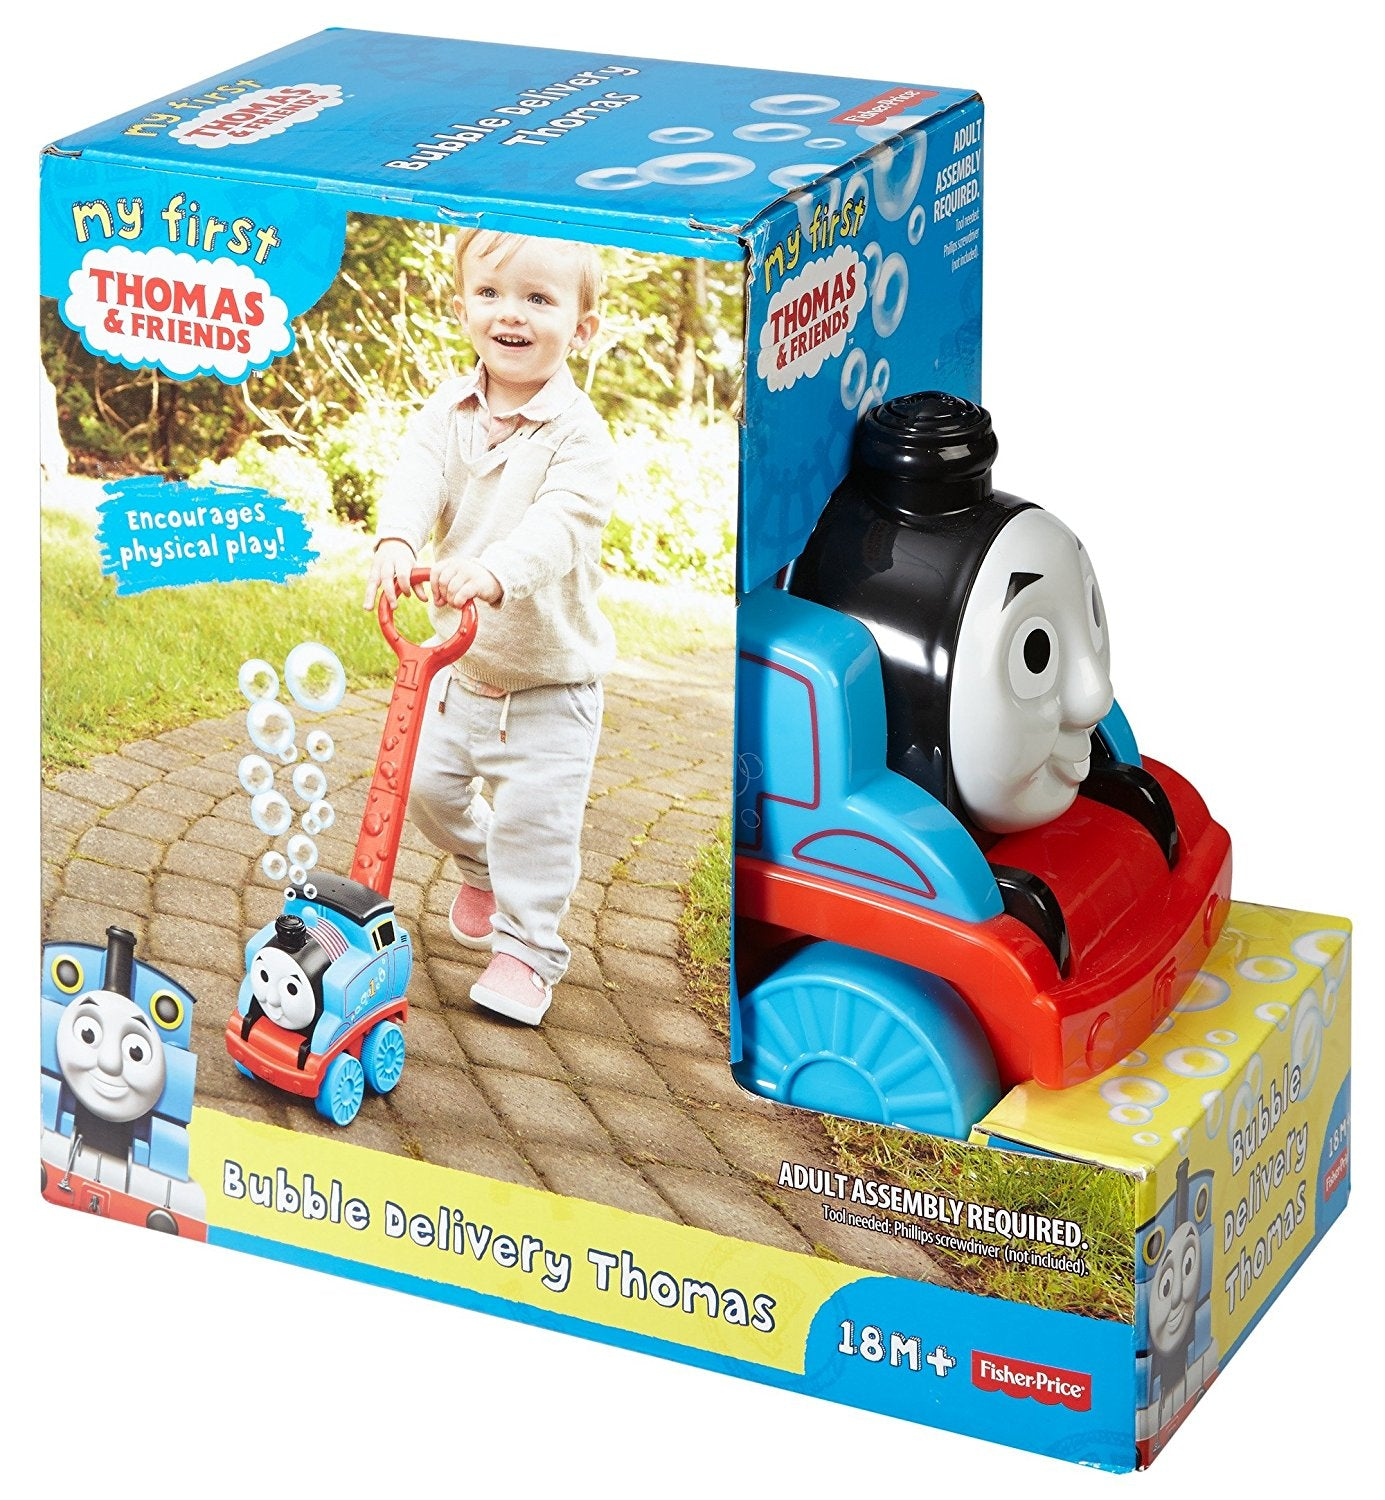 Mattel Fisher-Price My First Thomas & Friends Bubble Delivery Thomas DGL03